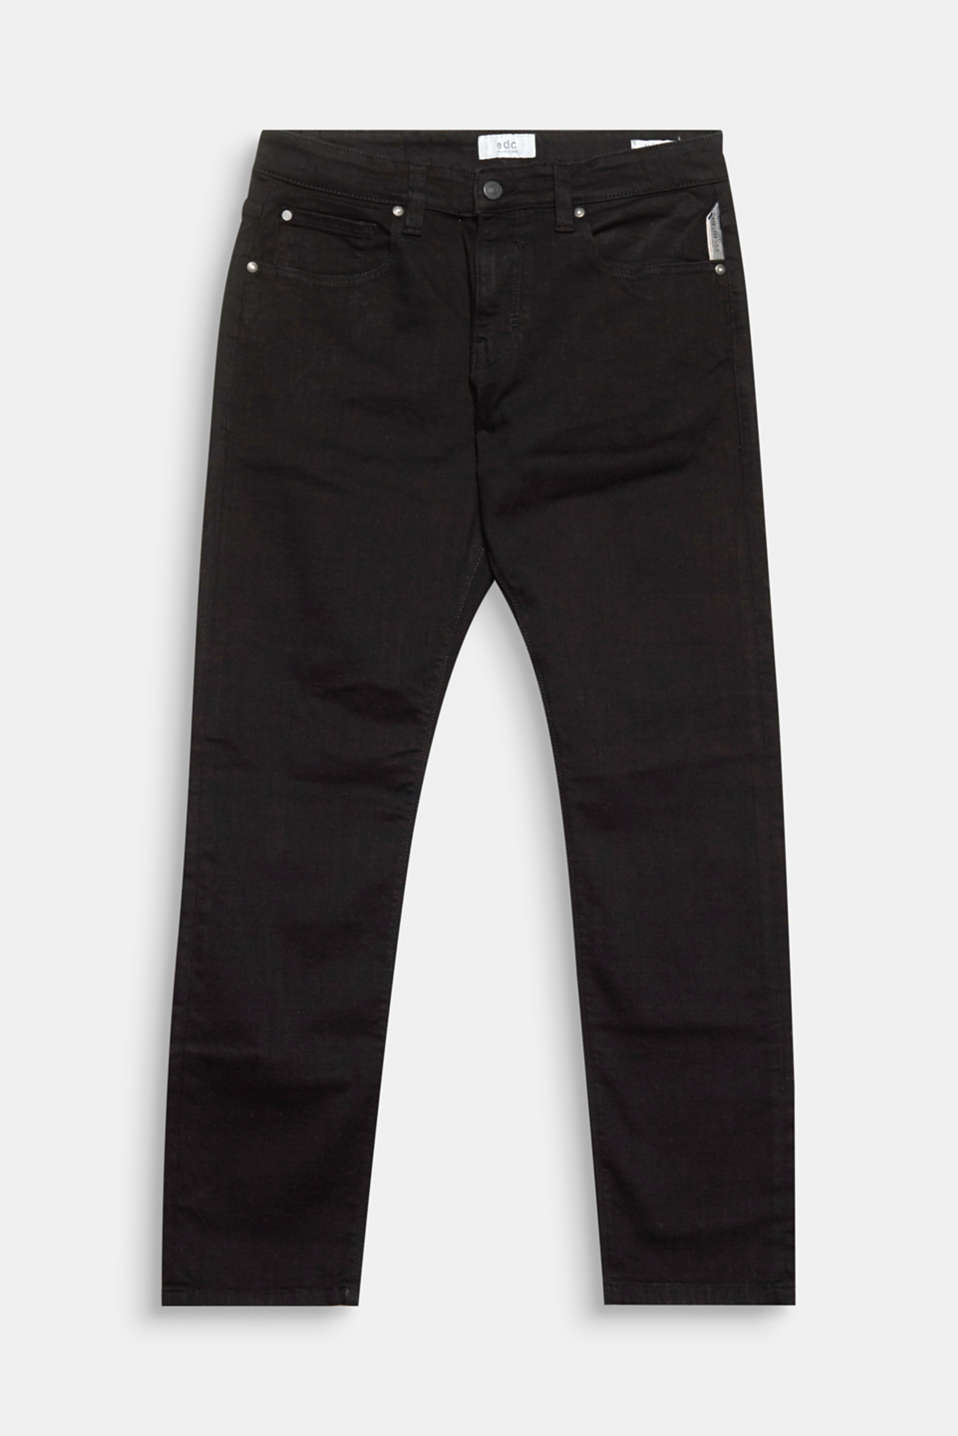 These comfortable five-pocket jeans look casual, yet smart thanks to the deep black colour.